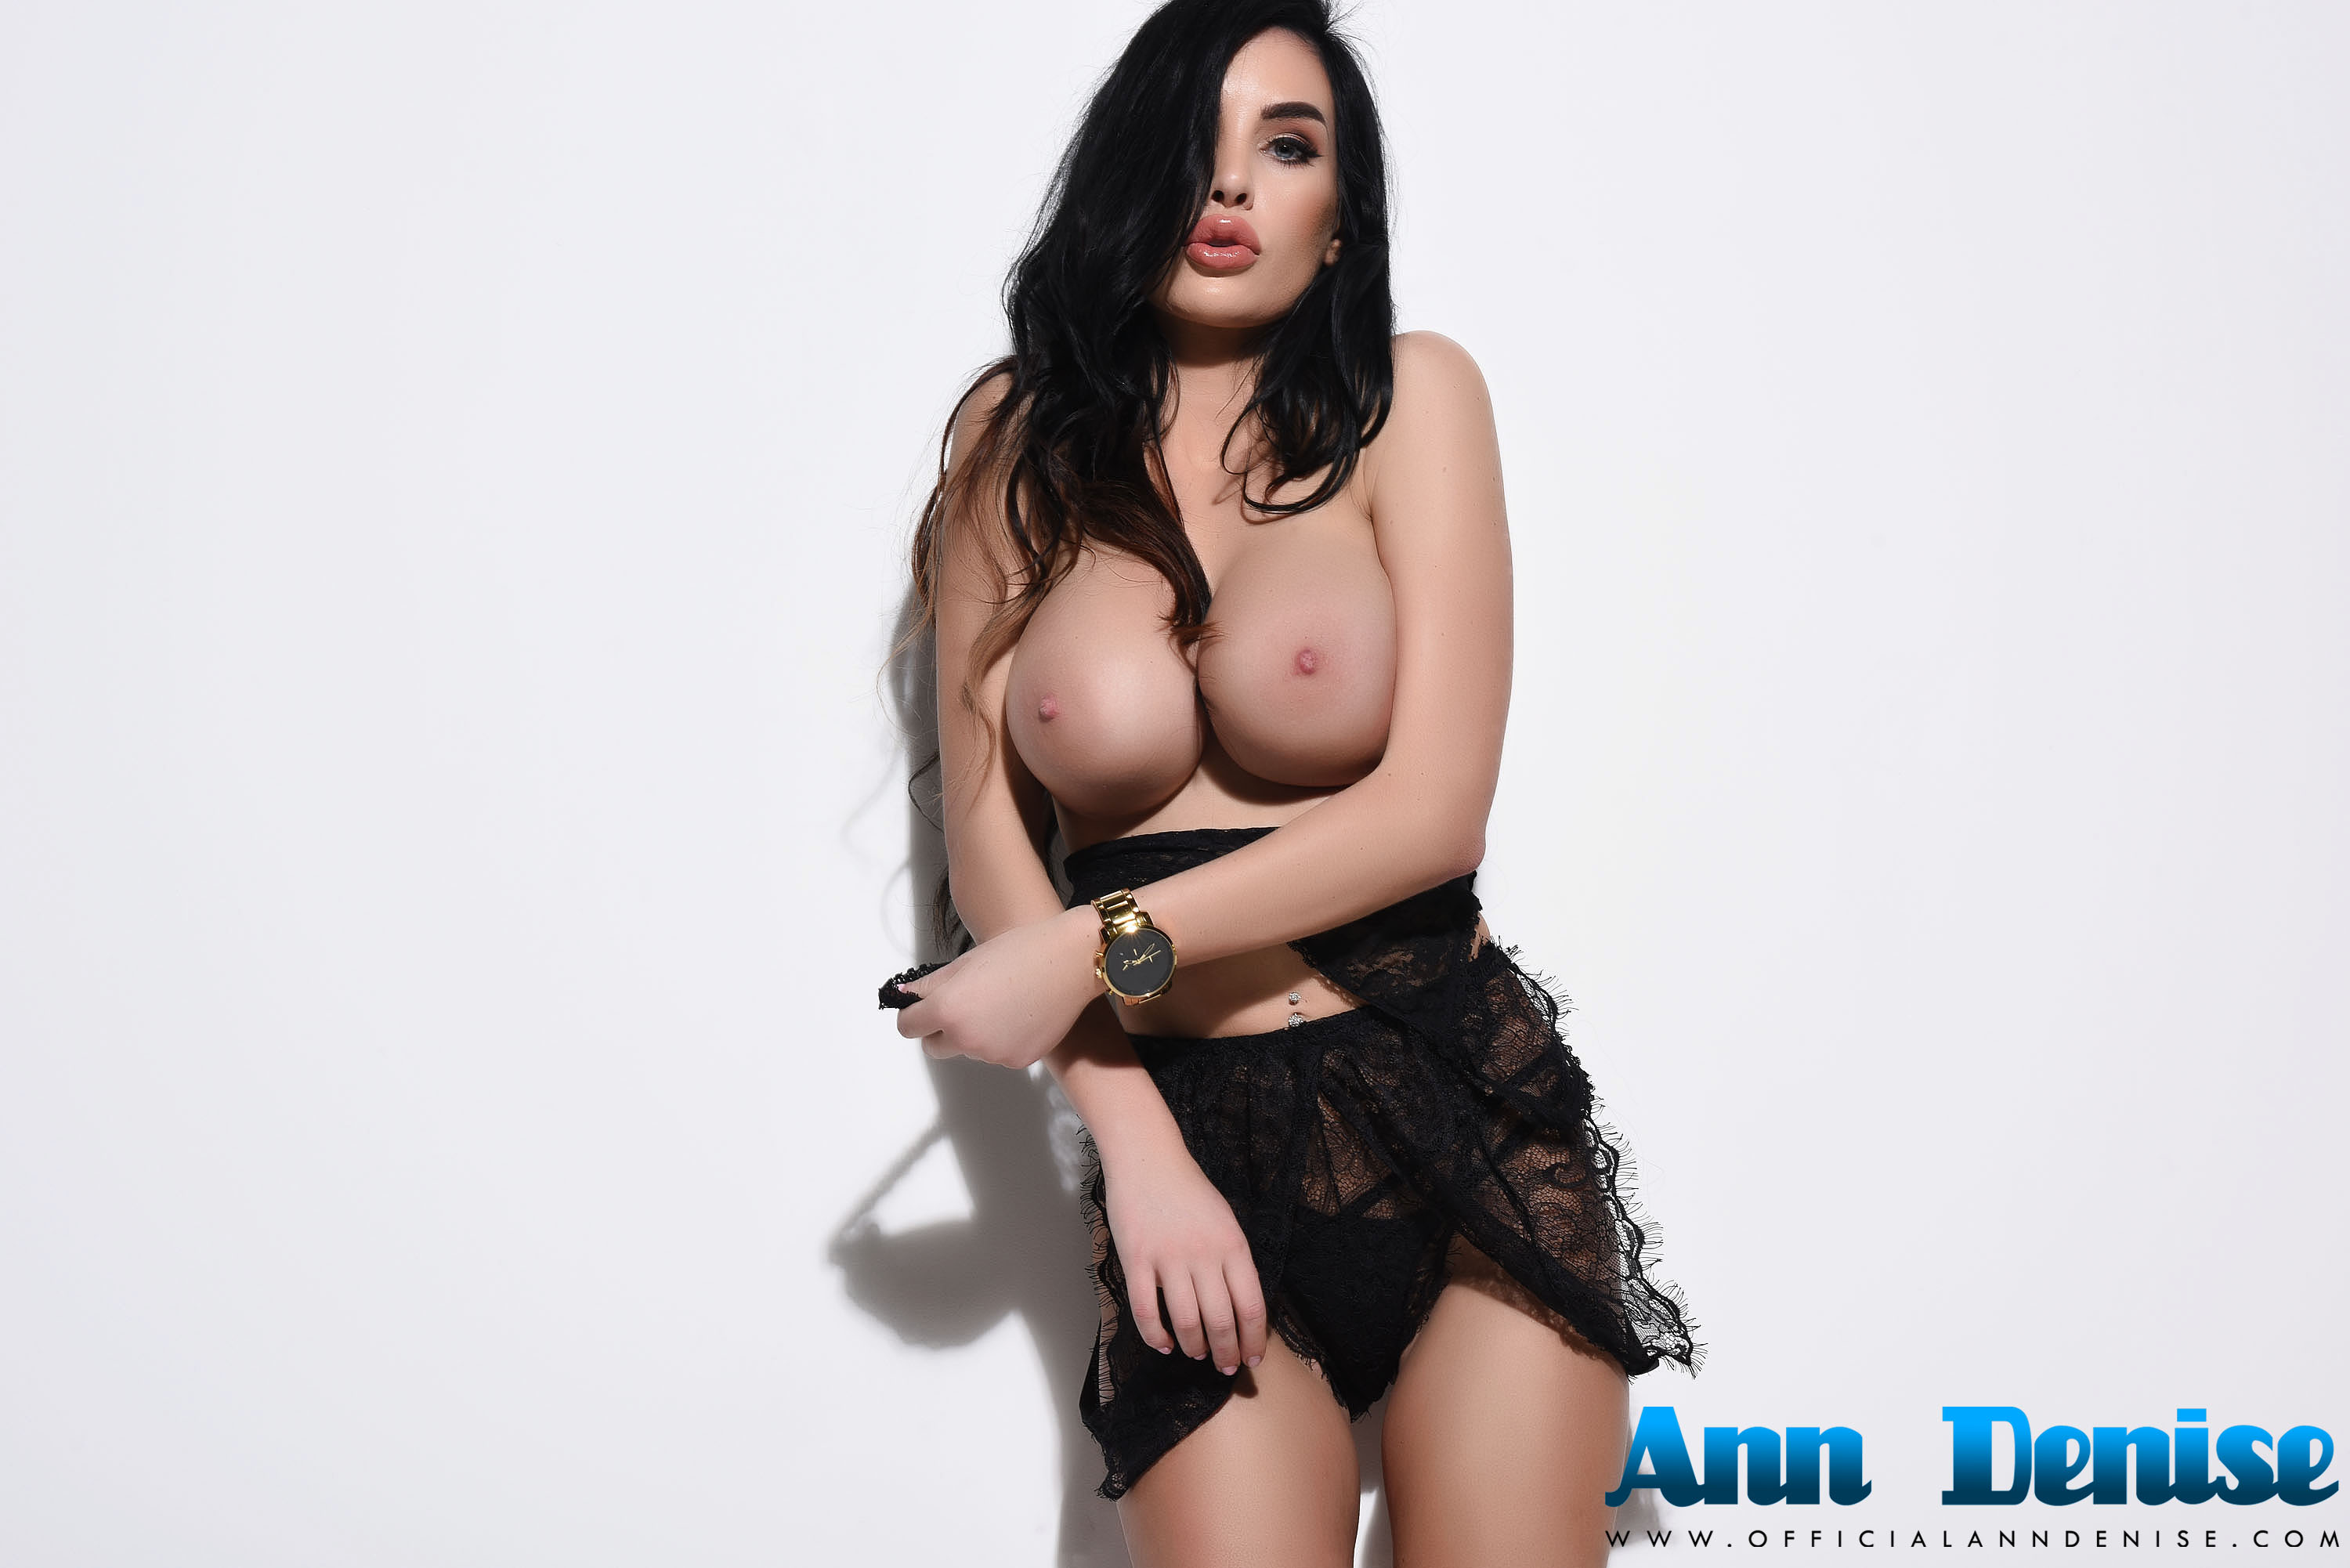 Ann Denise Stripping Black See Through Lingerie